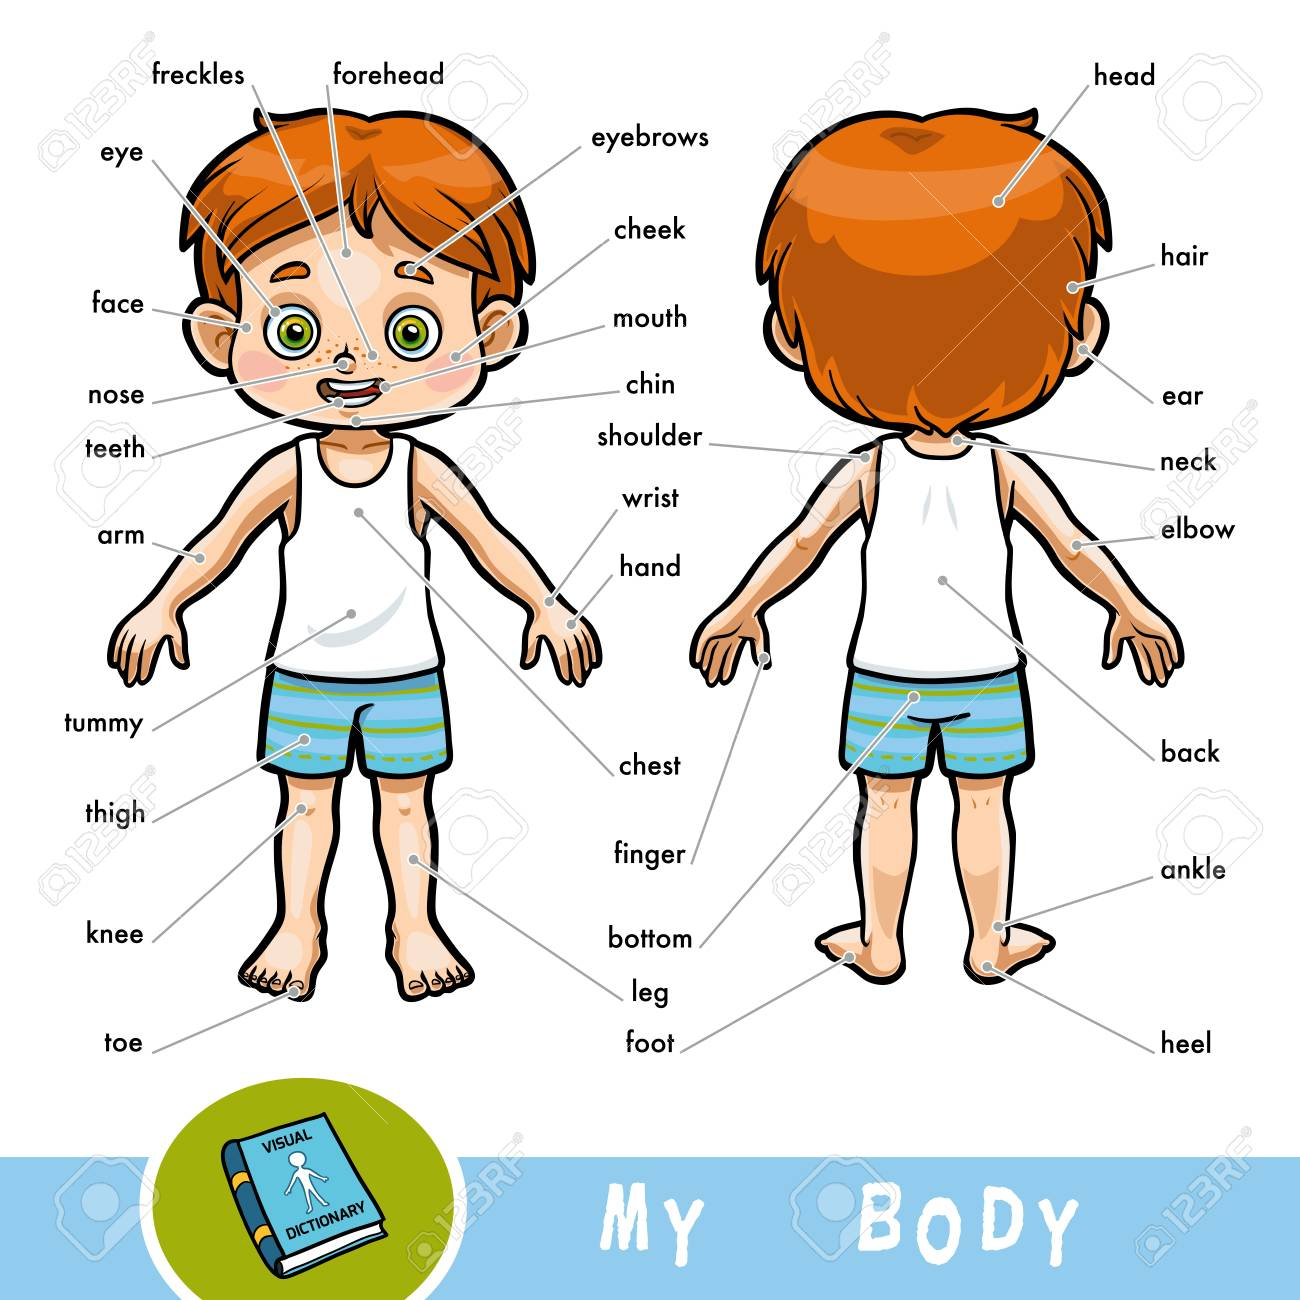 Cartoon visual dictionary for children about the human body.